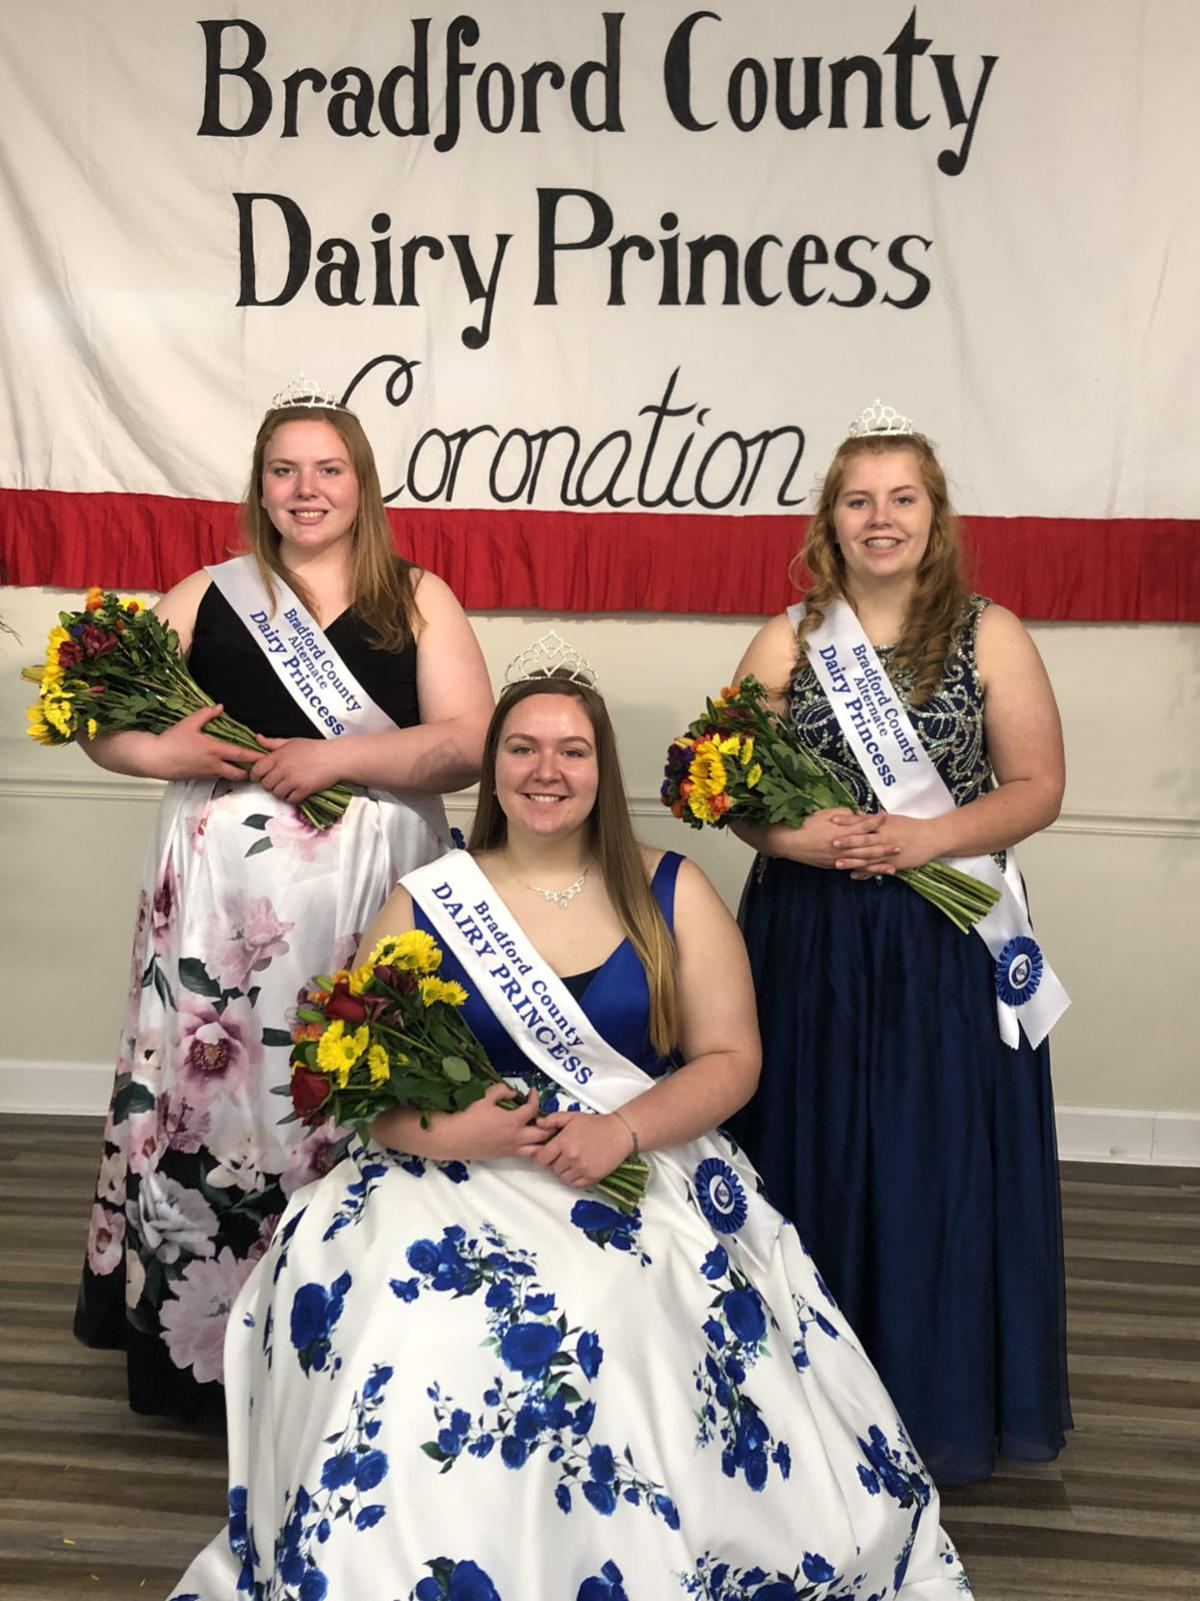 Towanda's Bride-Marshall crowned Bradford County Dairy Princess